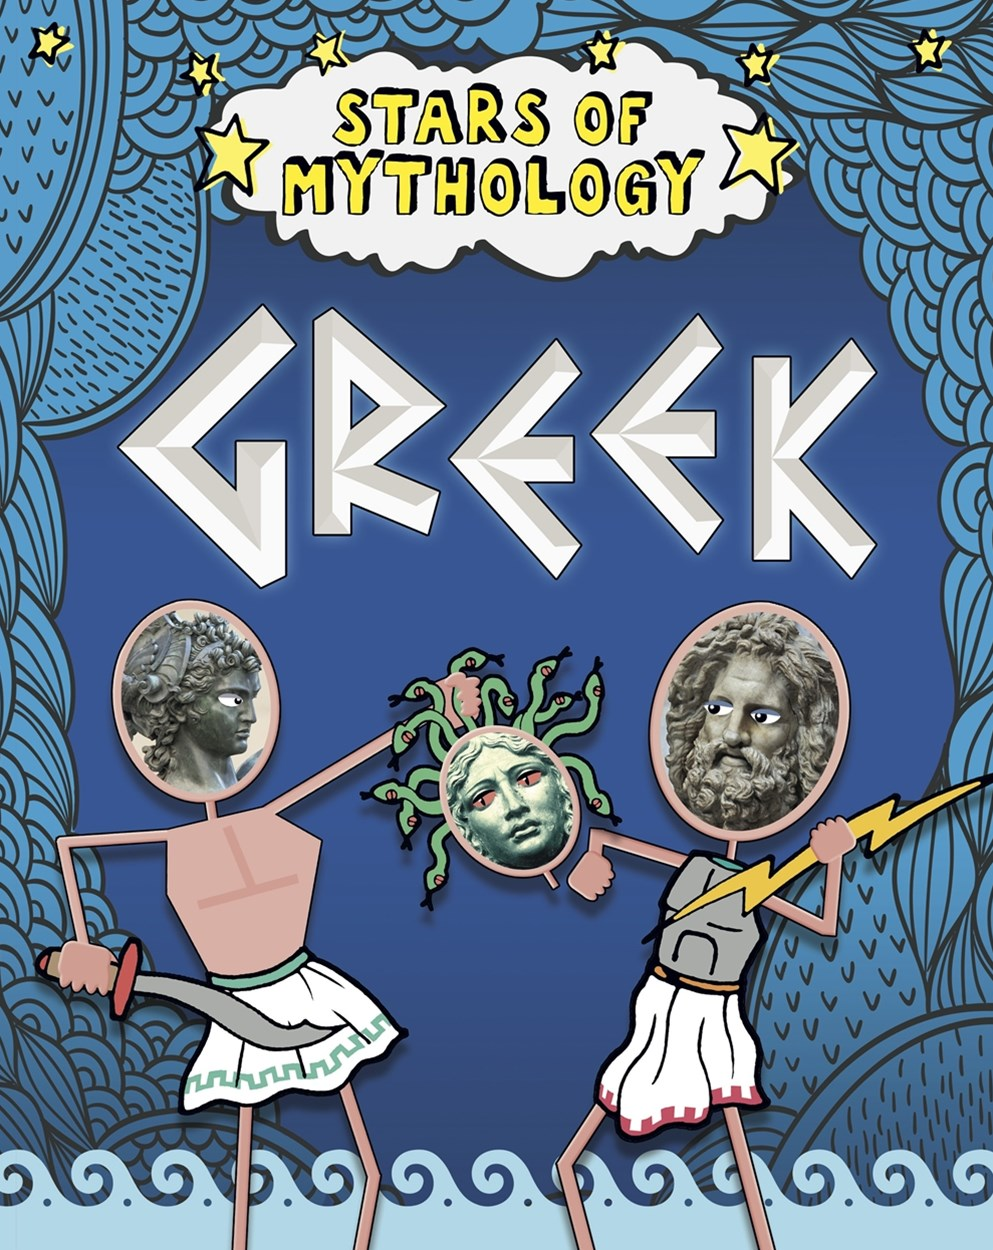 Stars of Mythology: Greek